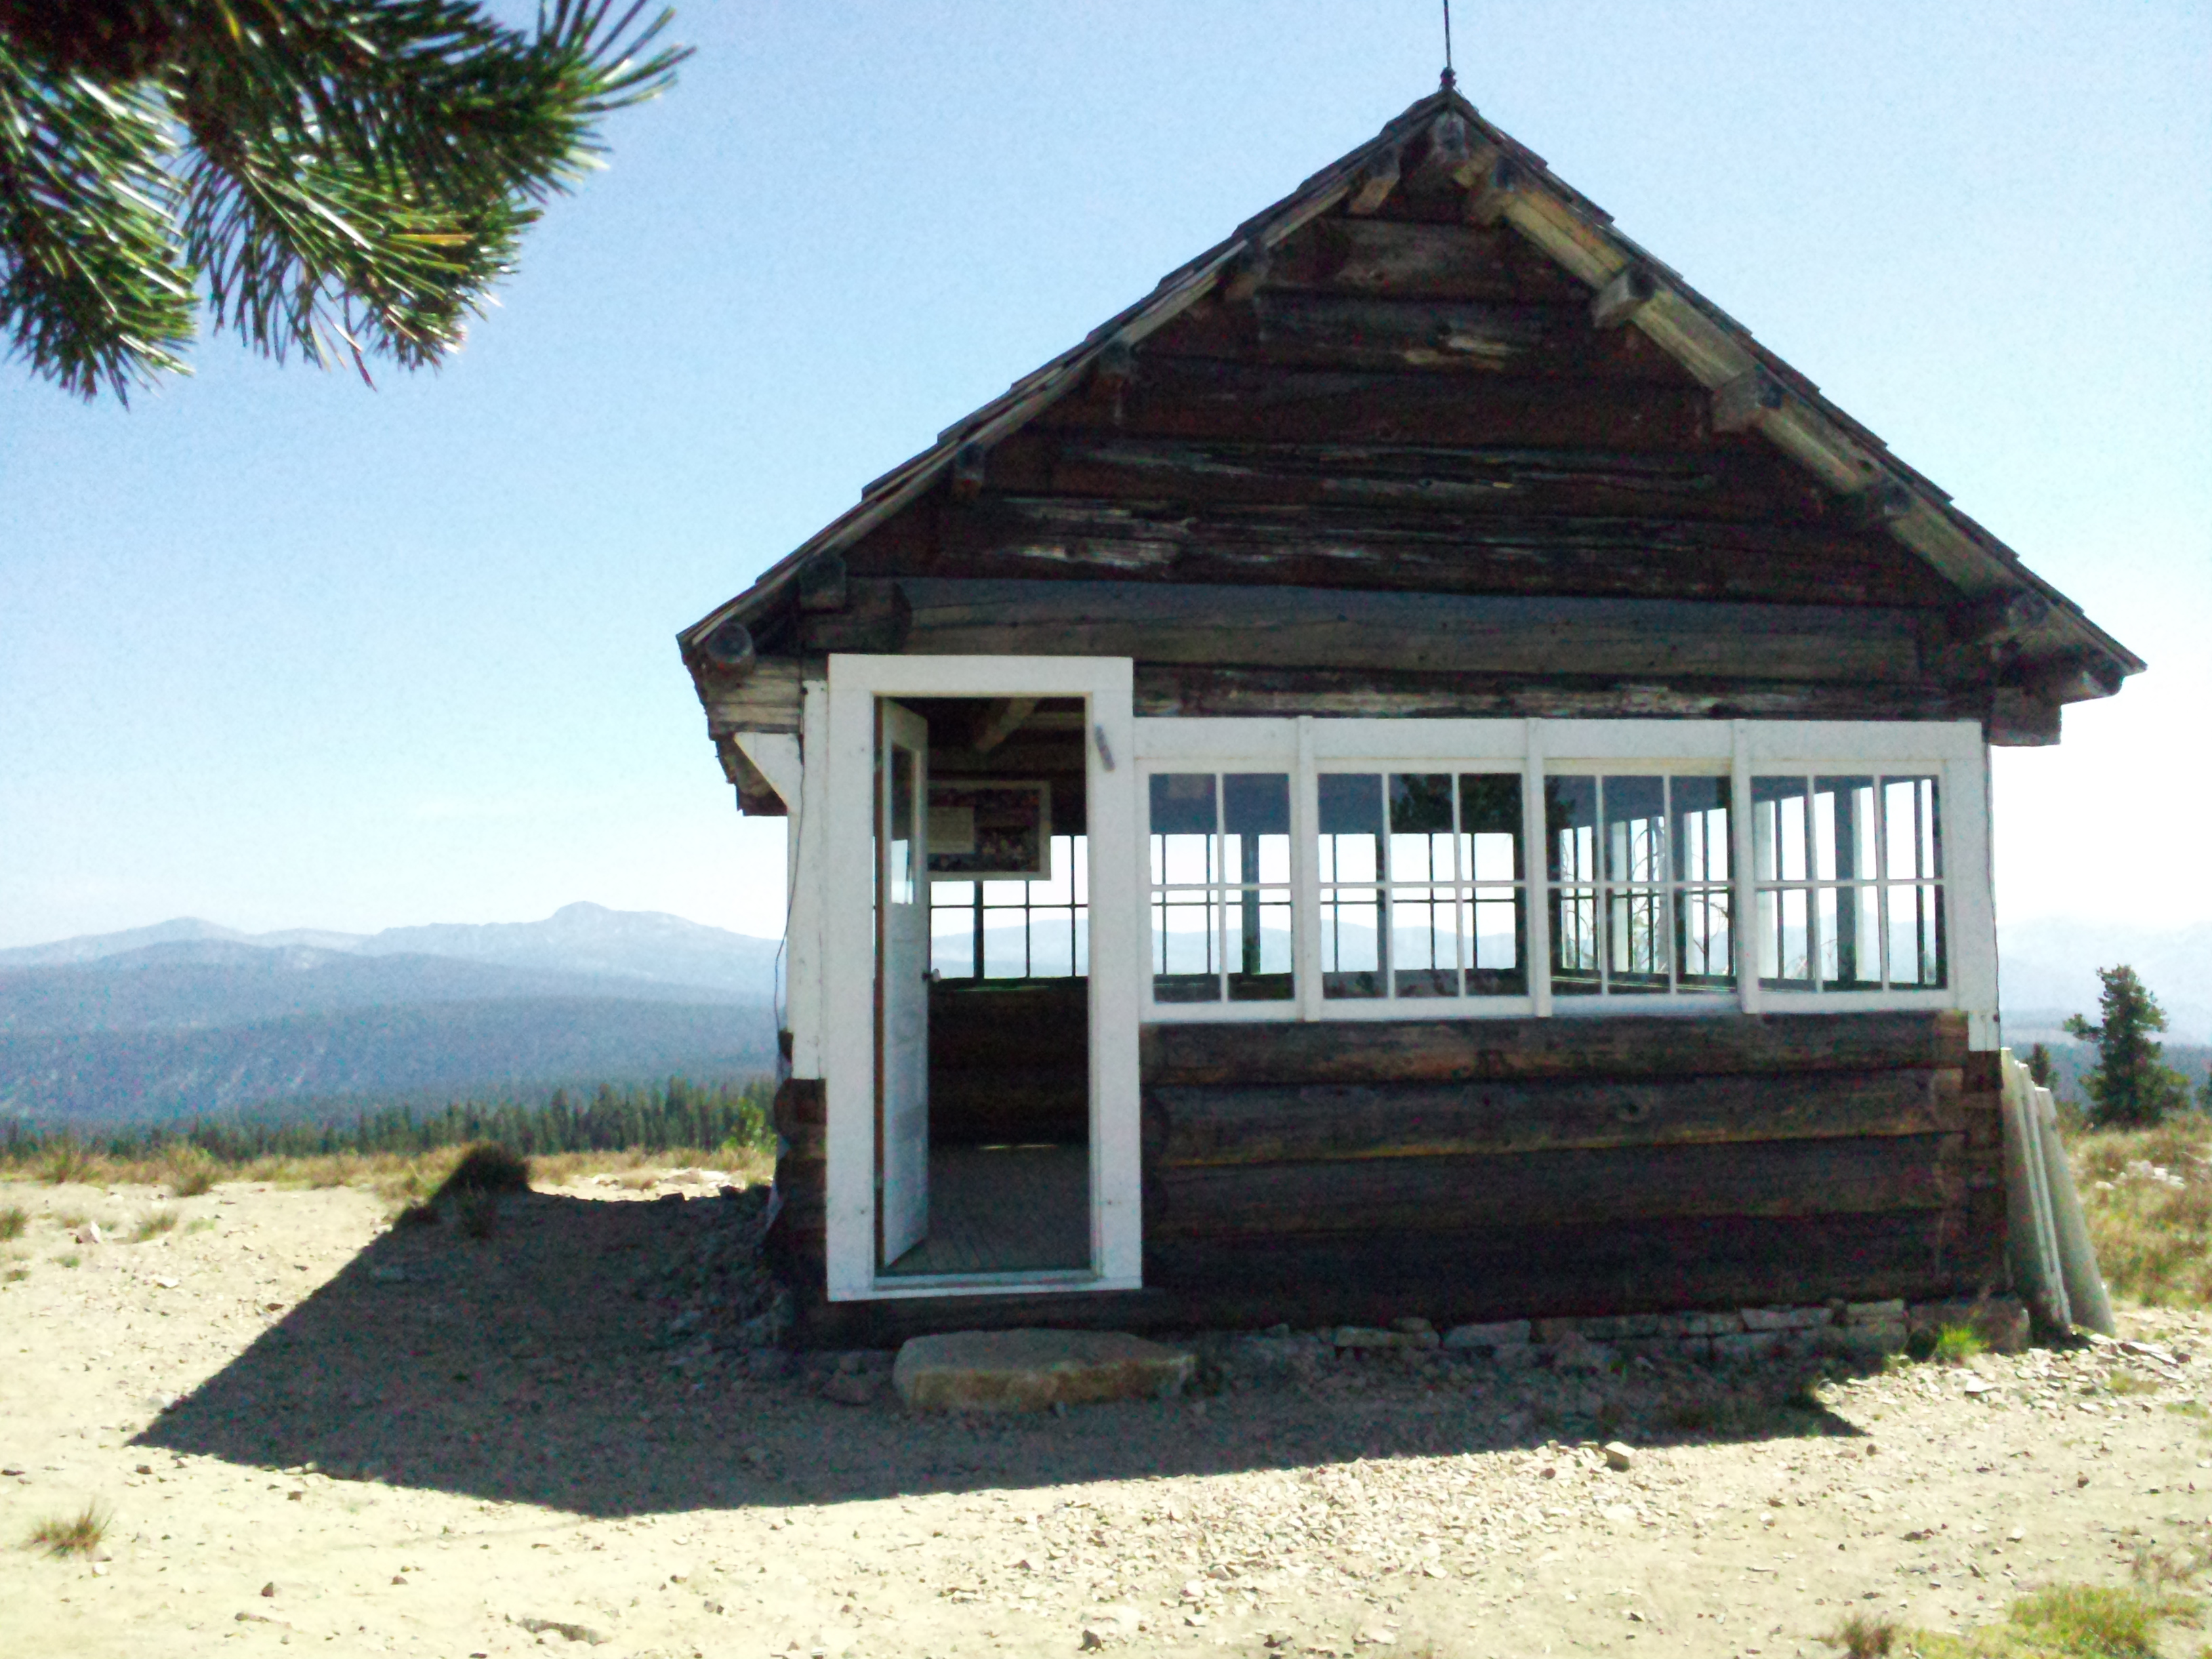 Trail Review - Square Mountain Fire Lookout